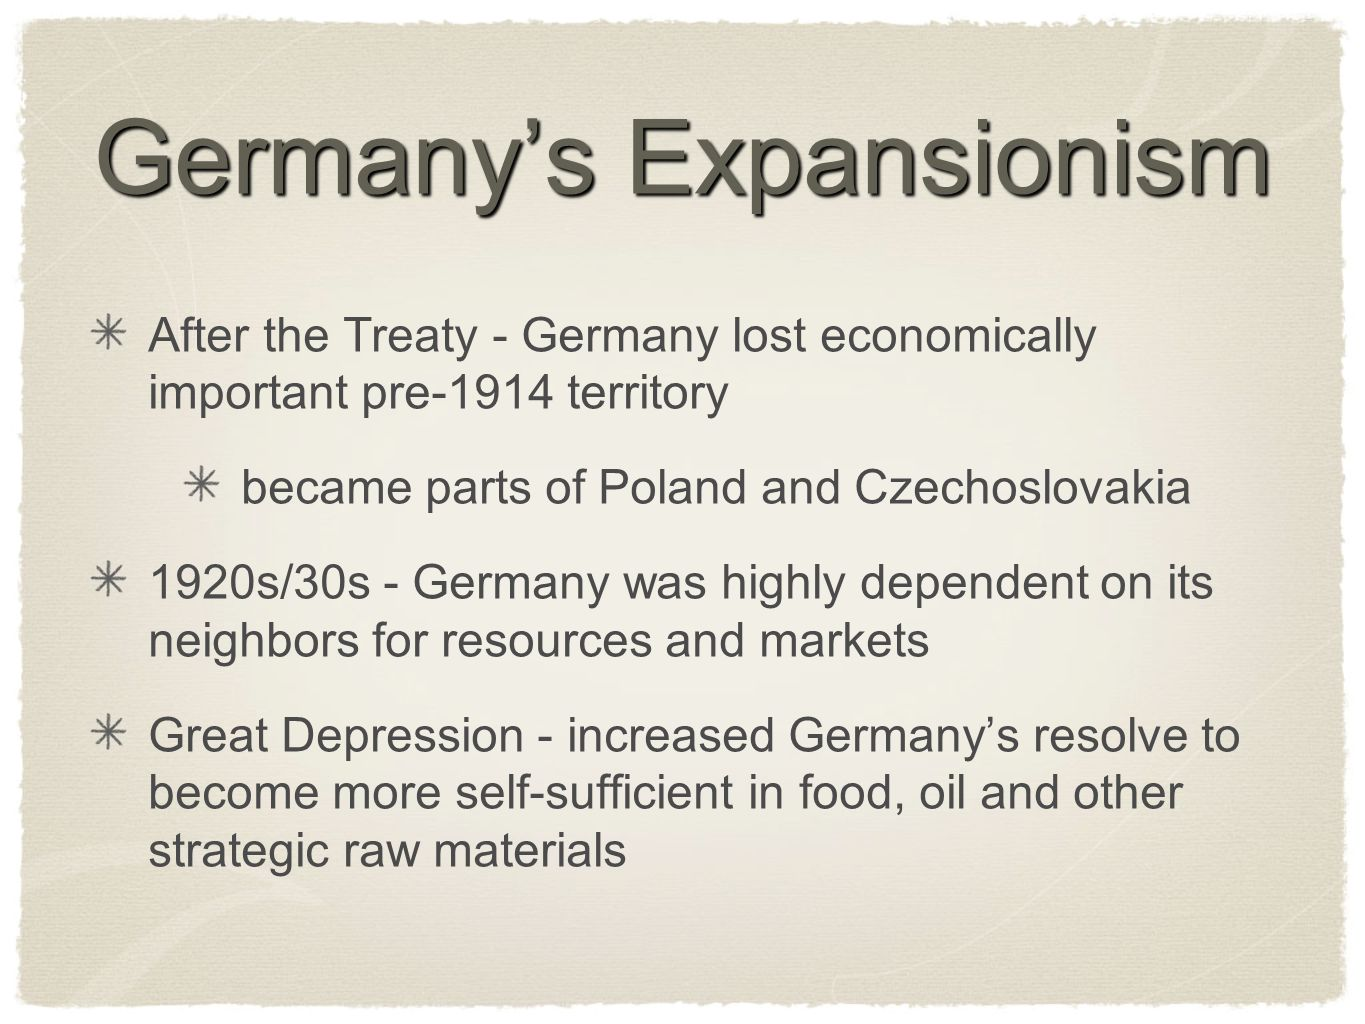 Germany's Expansionism